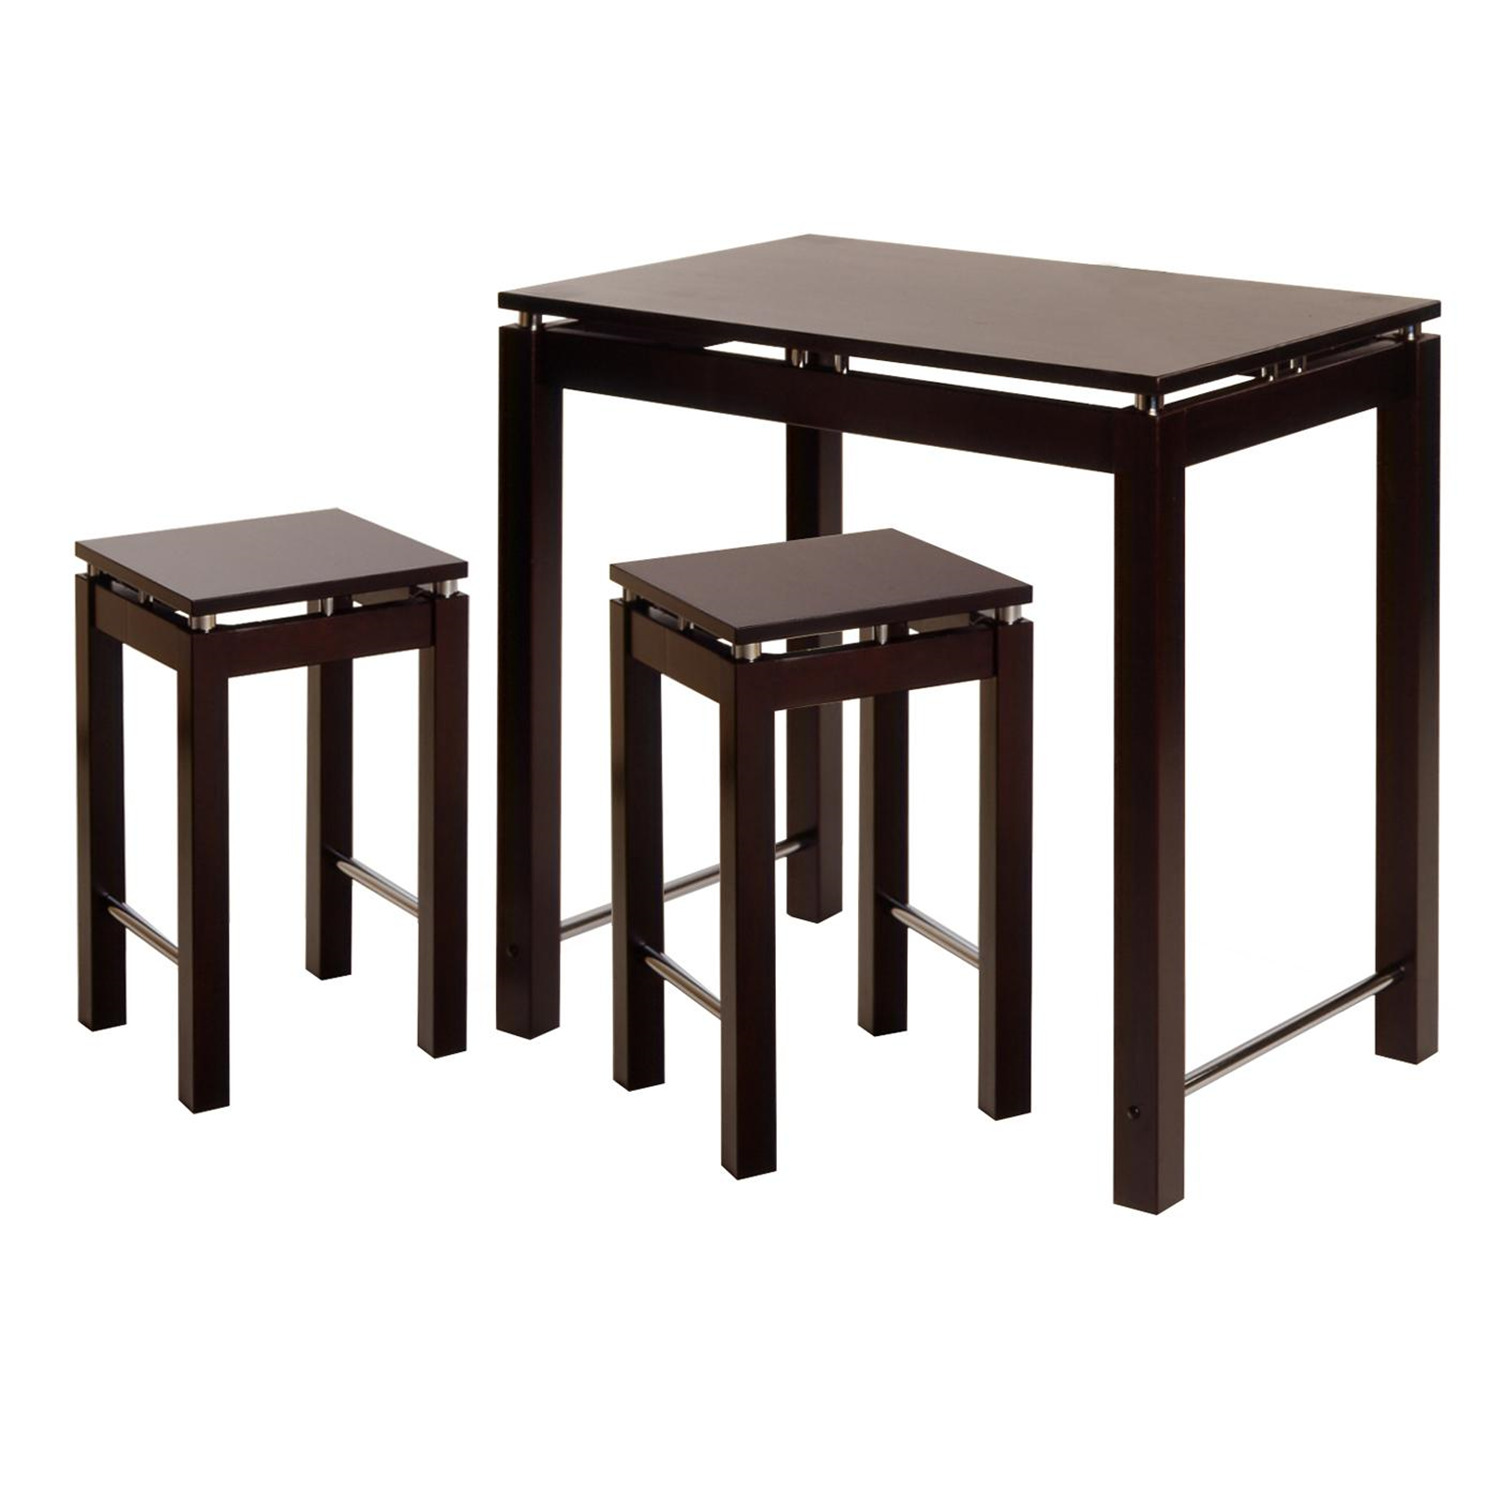 Winsome linea 3pc pub kitchen set island table with 2 for Kitchen table and stools